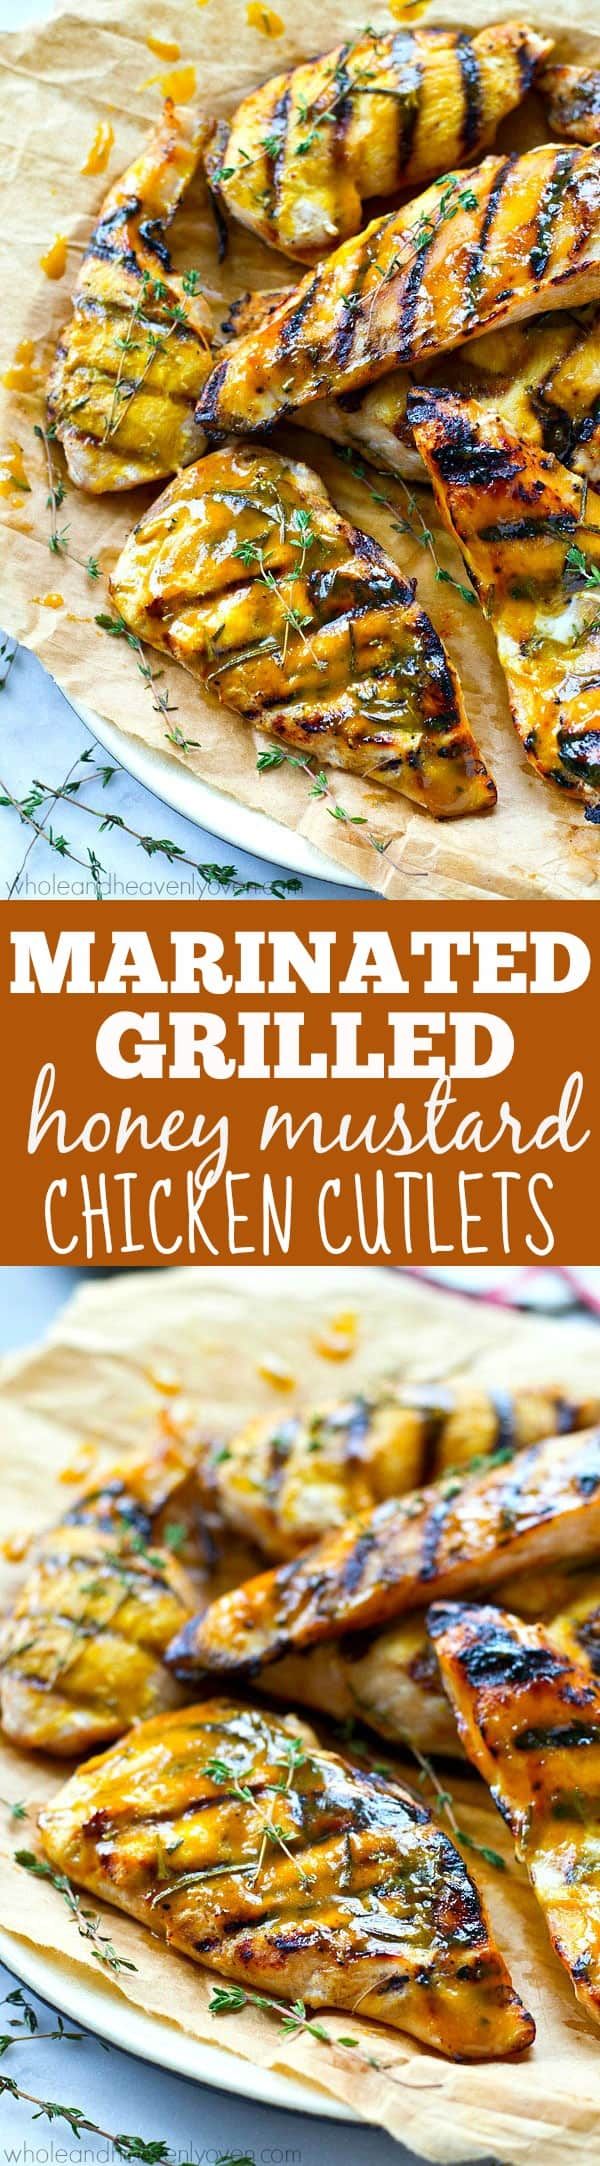 Marinated Grilled Honey Mustard Chicken Cutlets